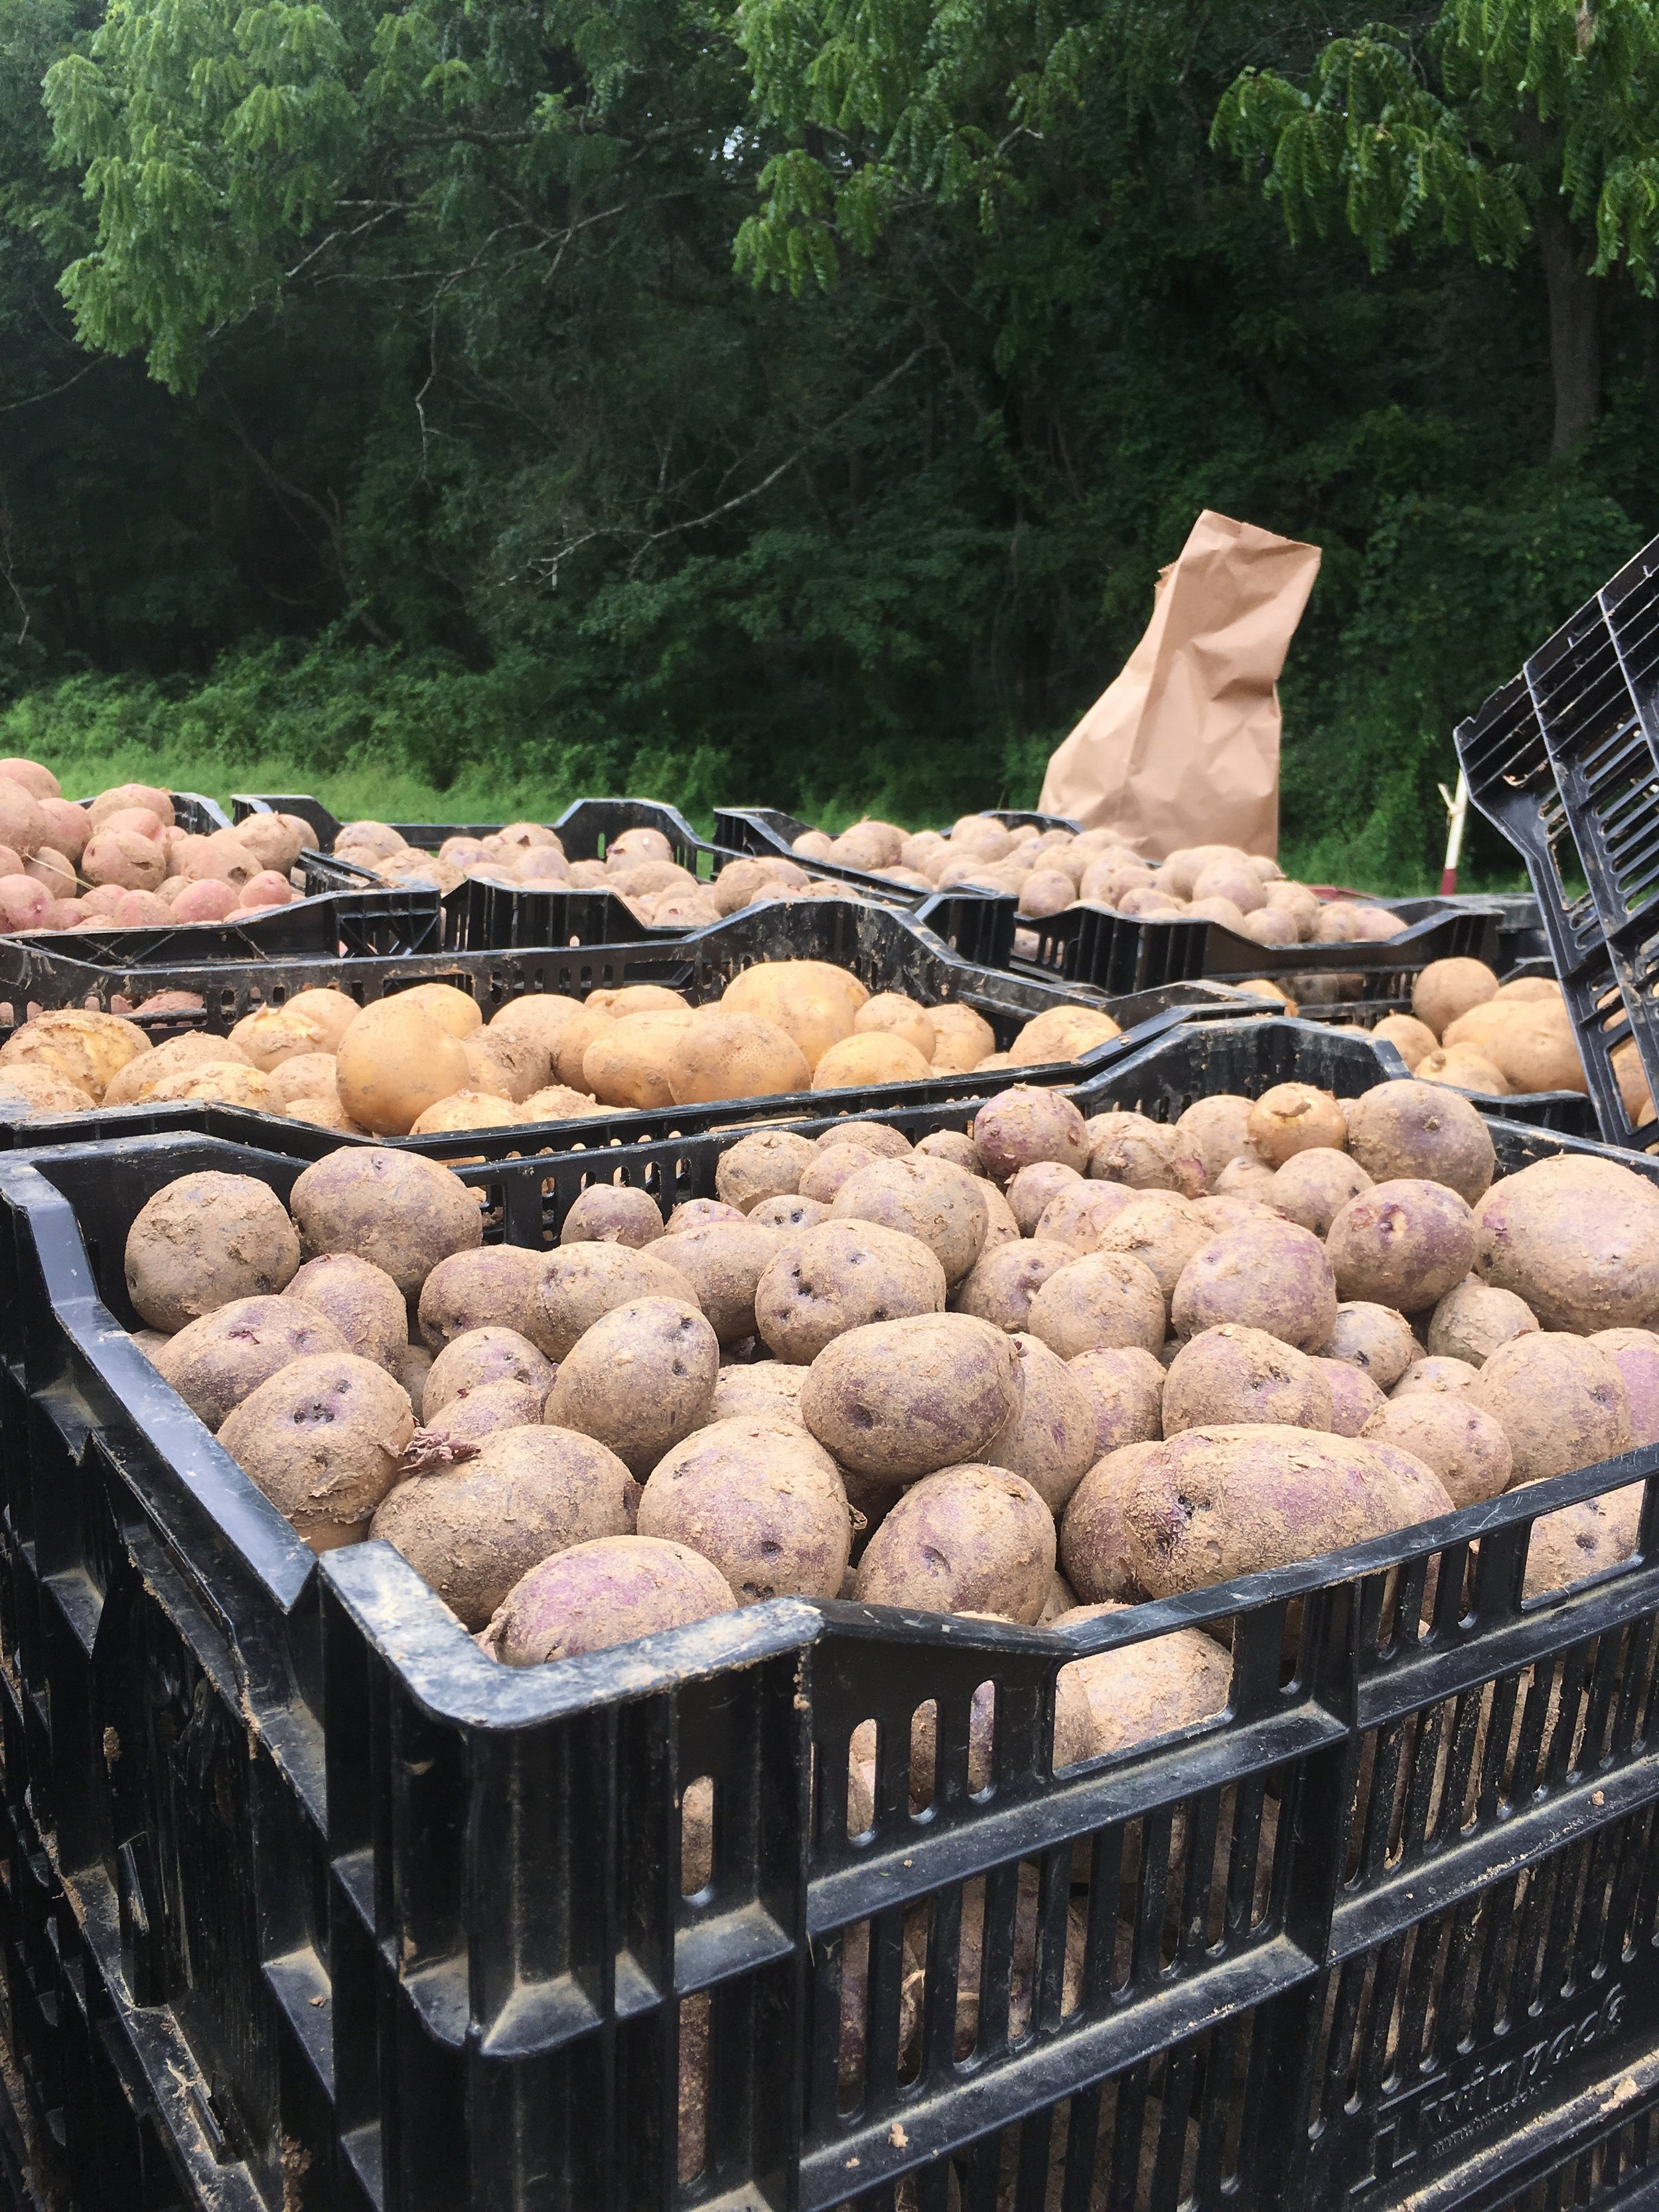 Just a few of the spuds we harvested on Thursday!